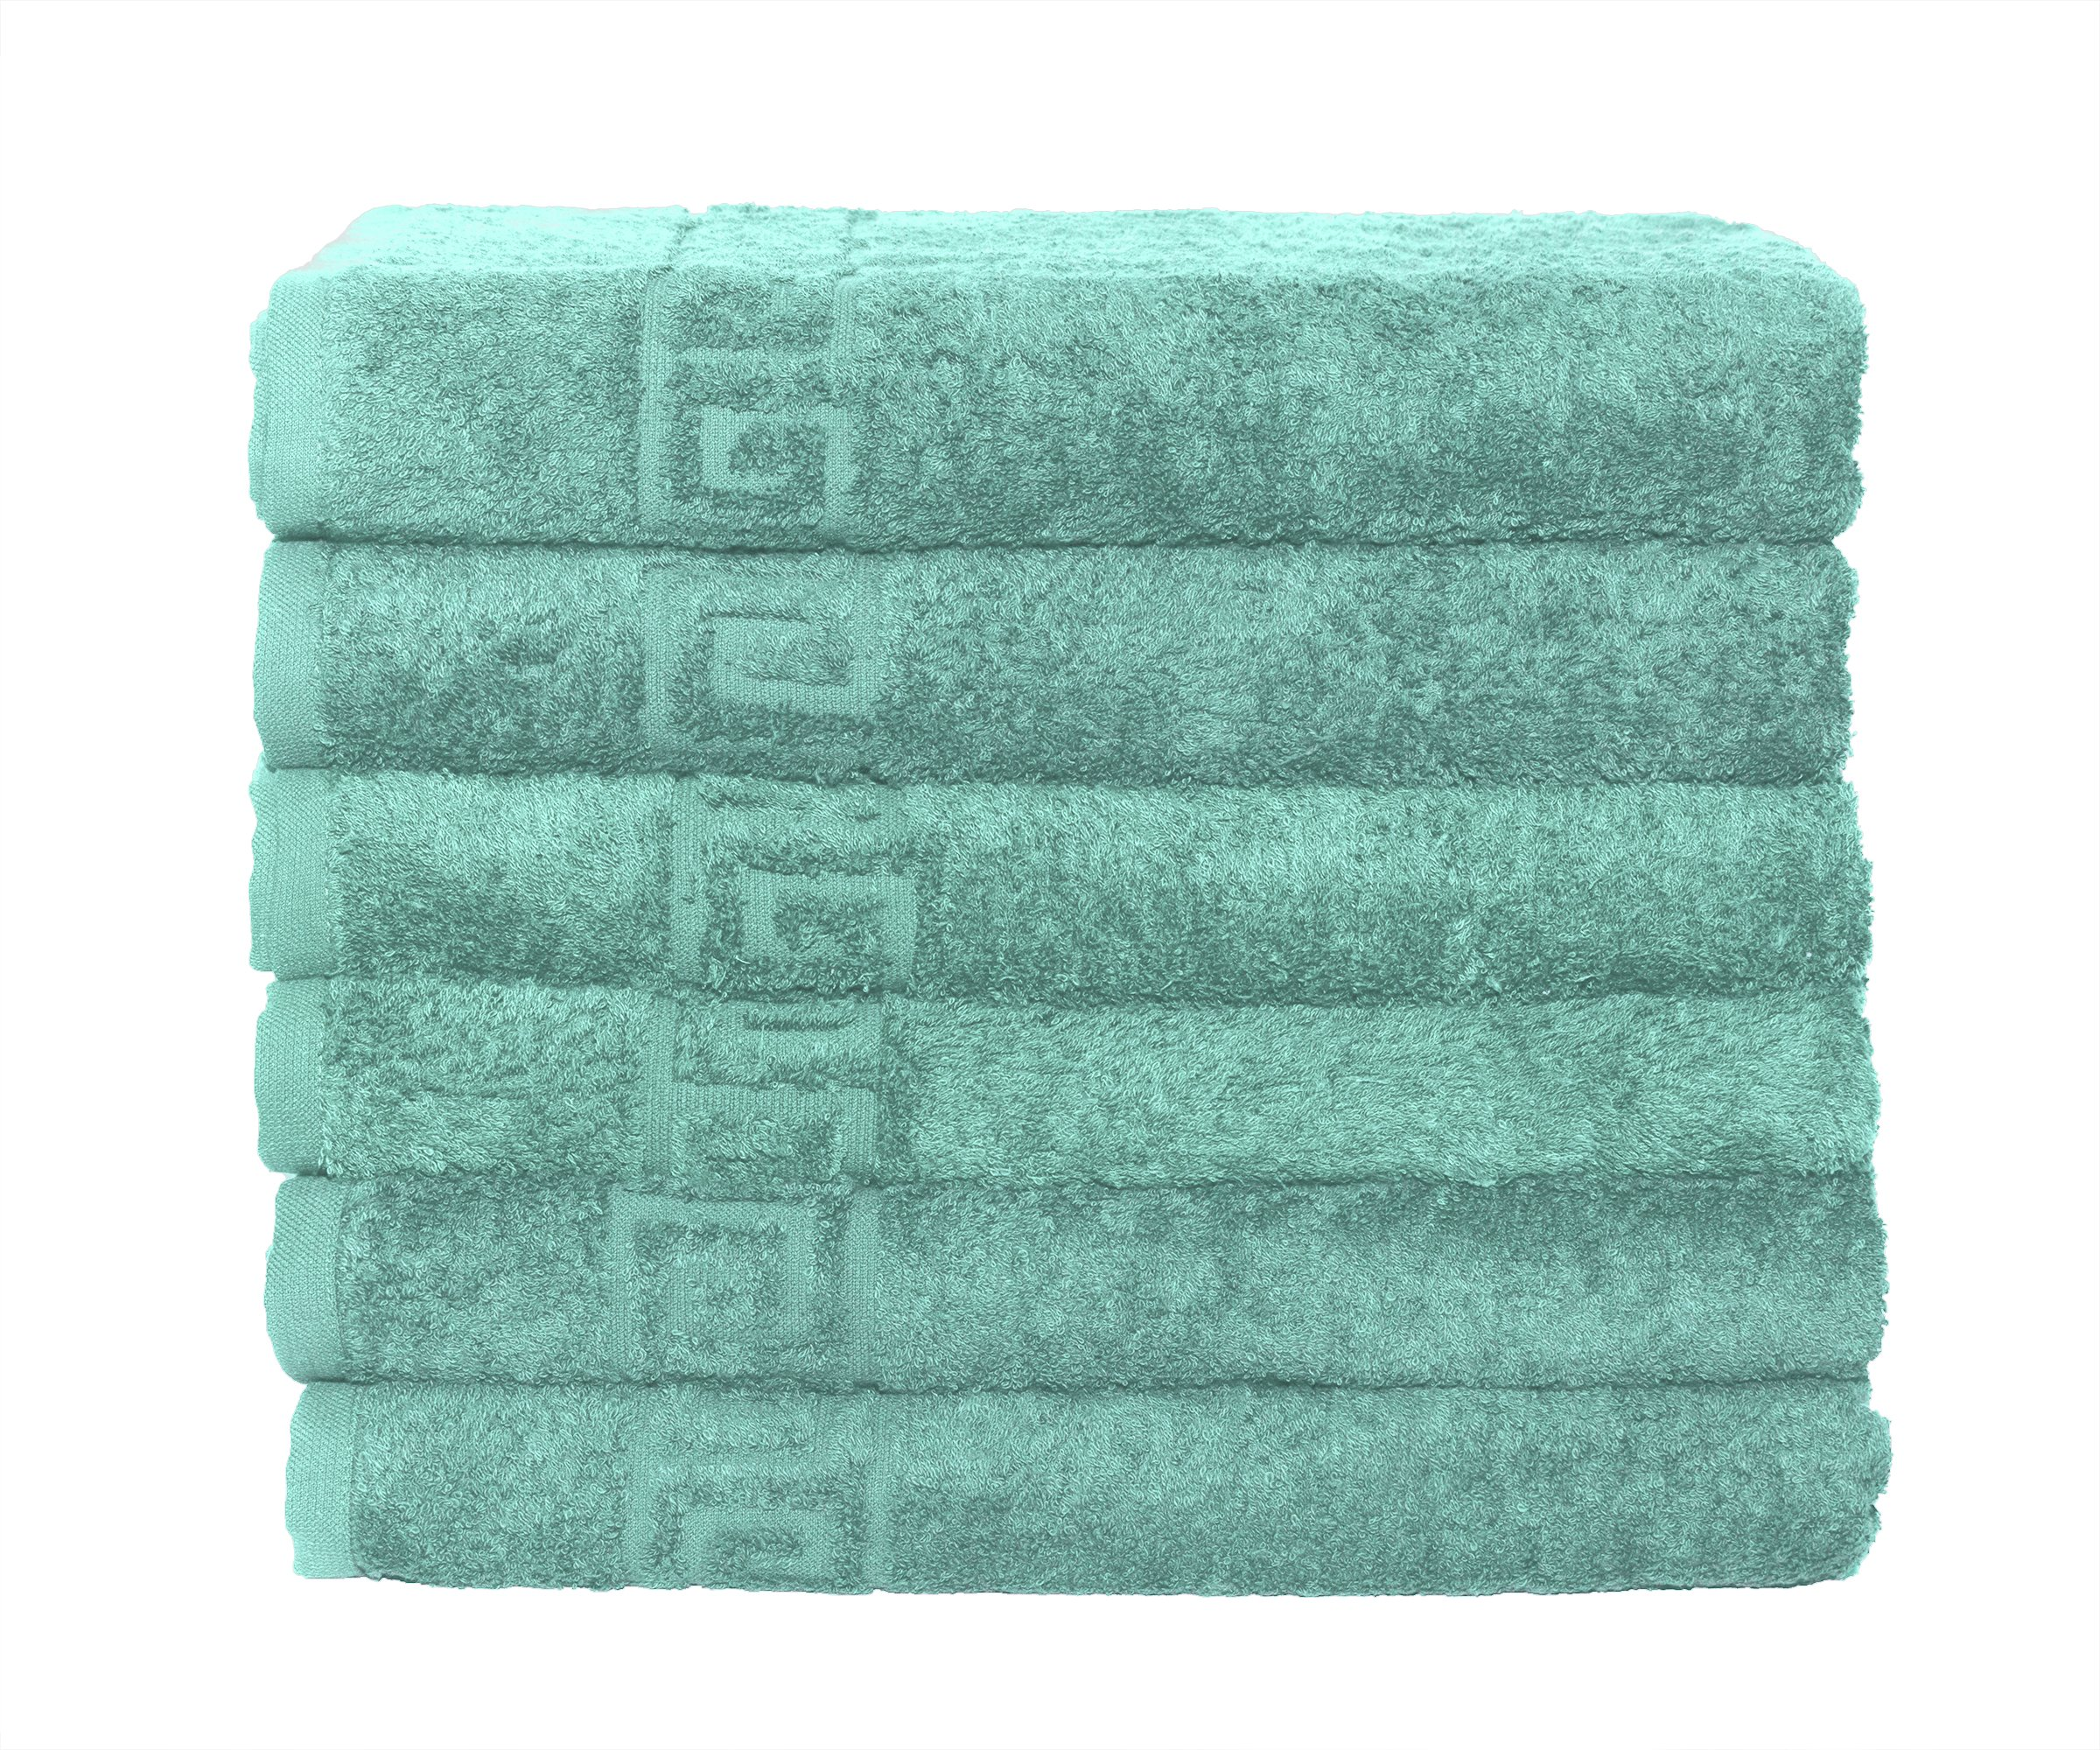 Msrugs Hand Towels for Bathroom - 100% cotton - Soft/Luxury - Perfect Bath Hand Towel/Hotel Hand towels/Spa Hand Towels/Kitchen Hand towels/Golf Hand towel/Tropical Hand tow (6, Turquoise)